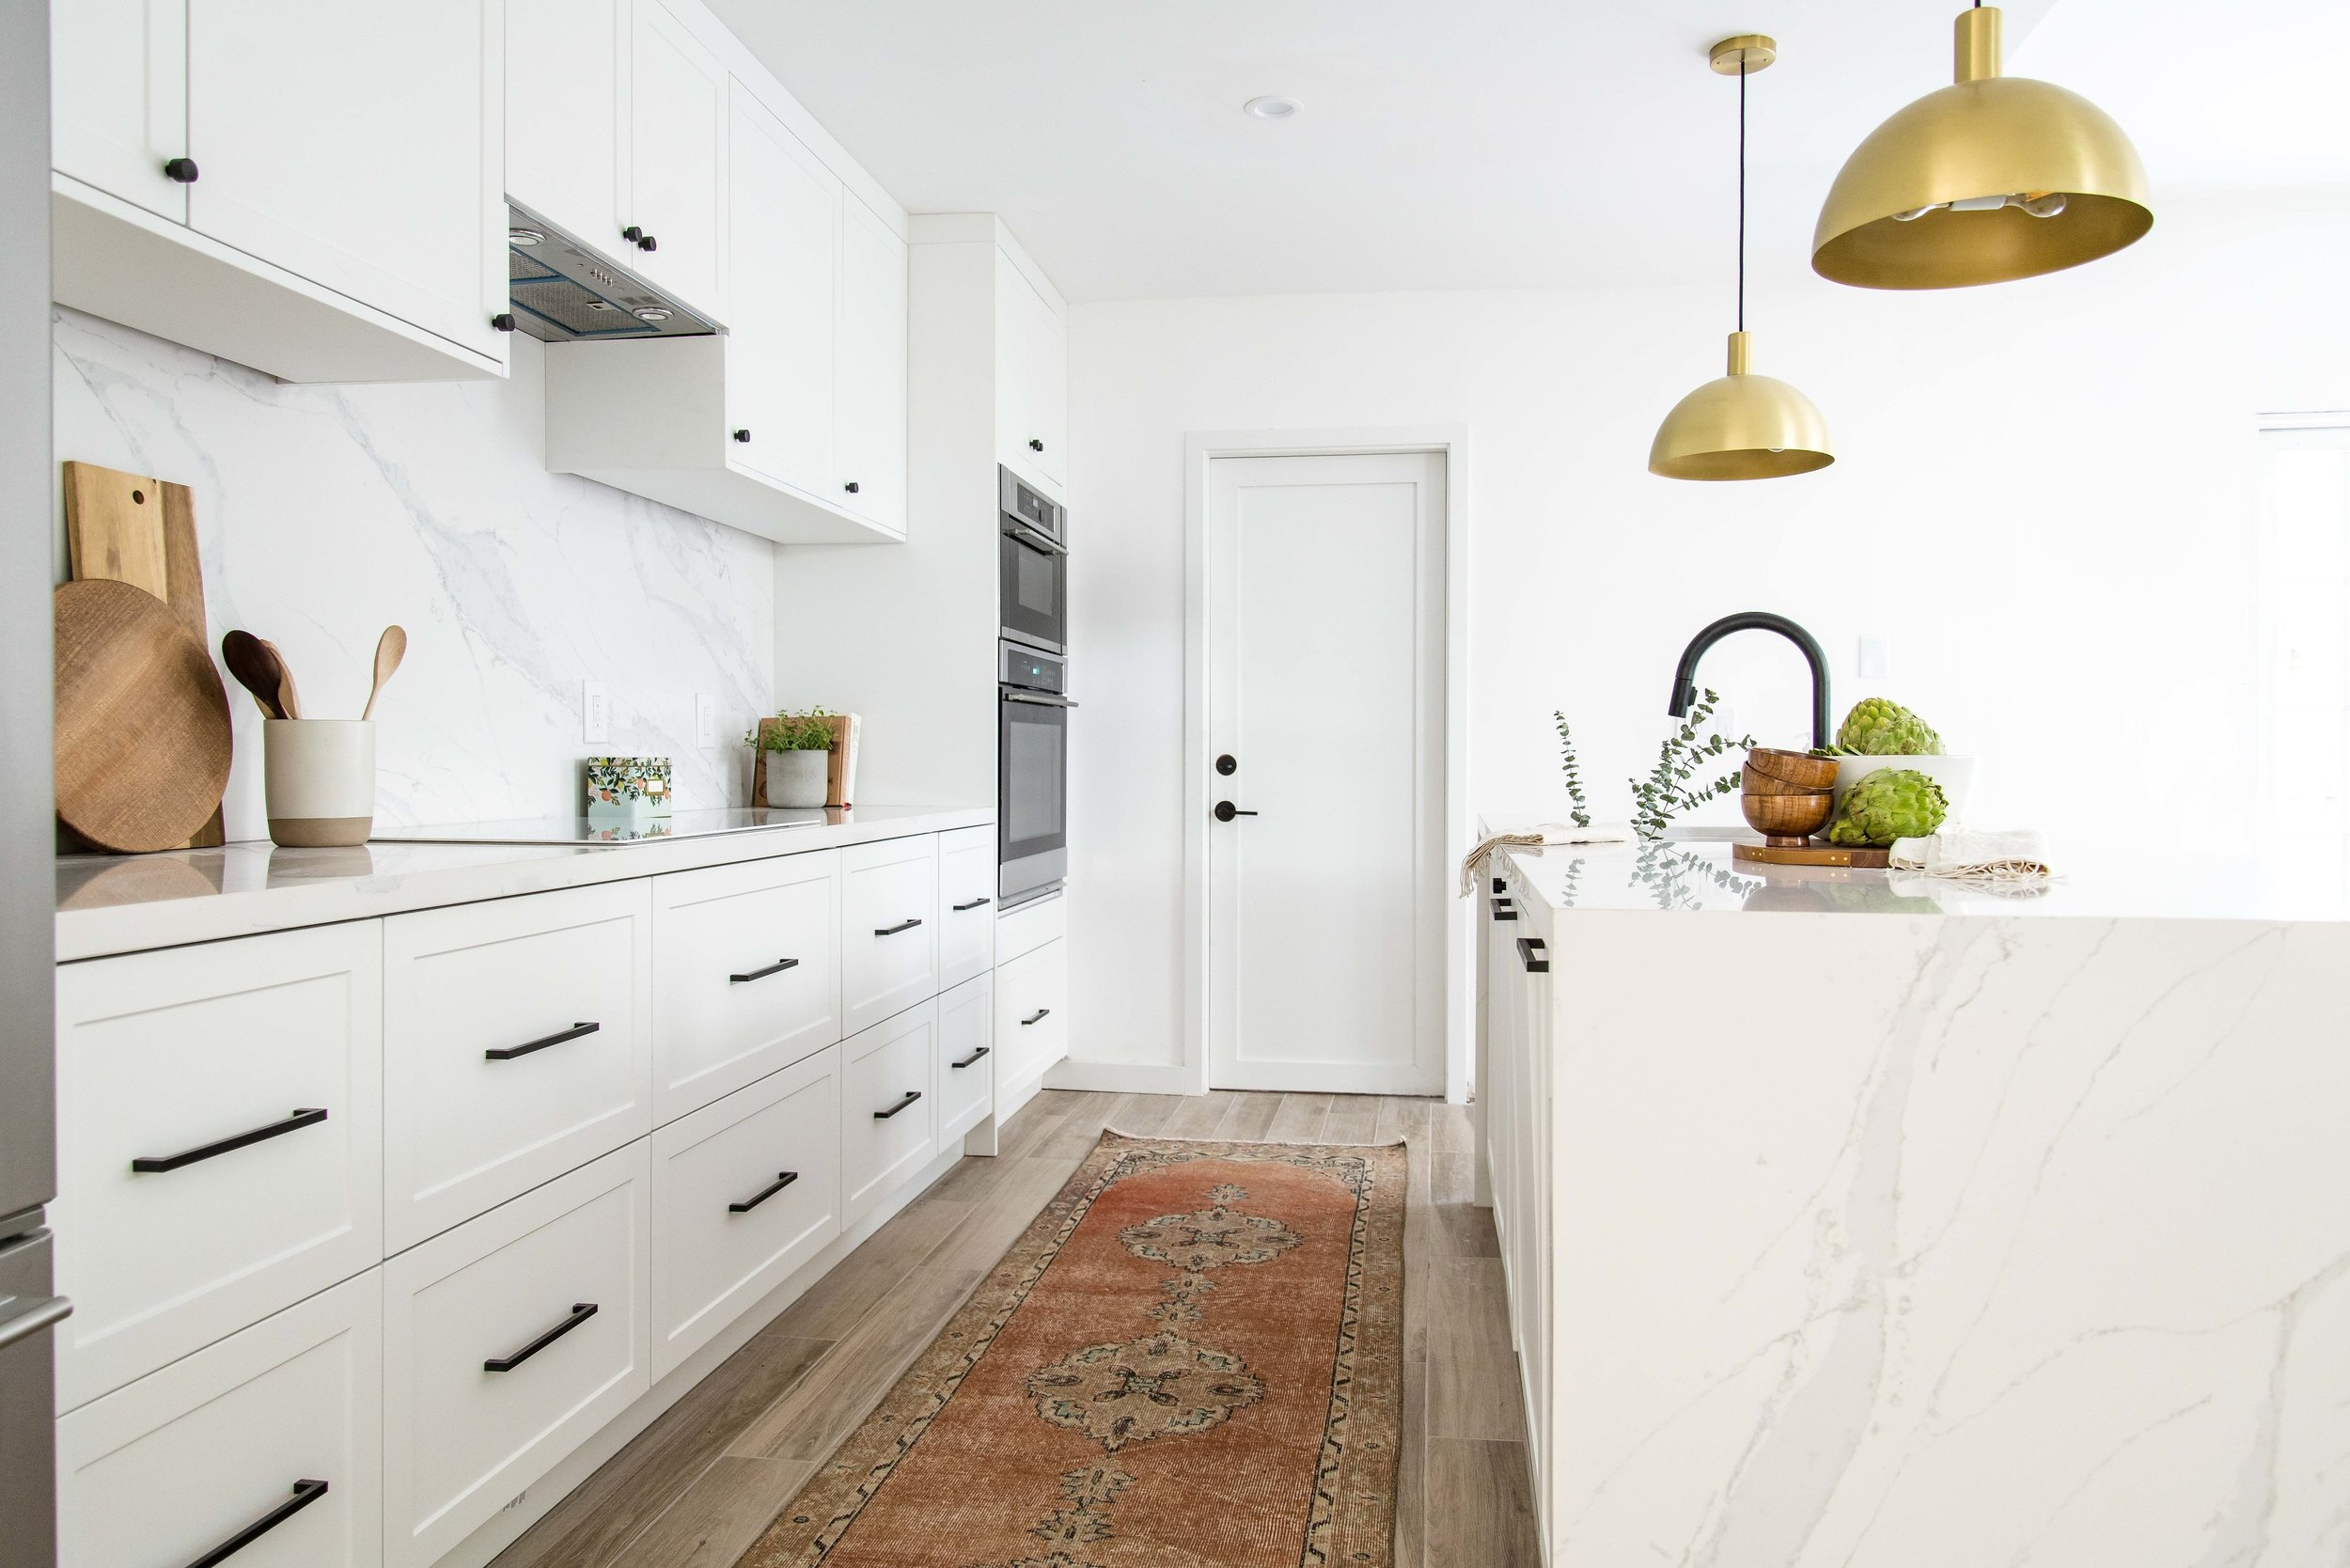 white kitchen with vintage runner - the habitat collective interior design - #projectpeachy